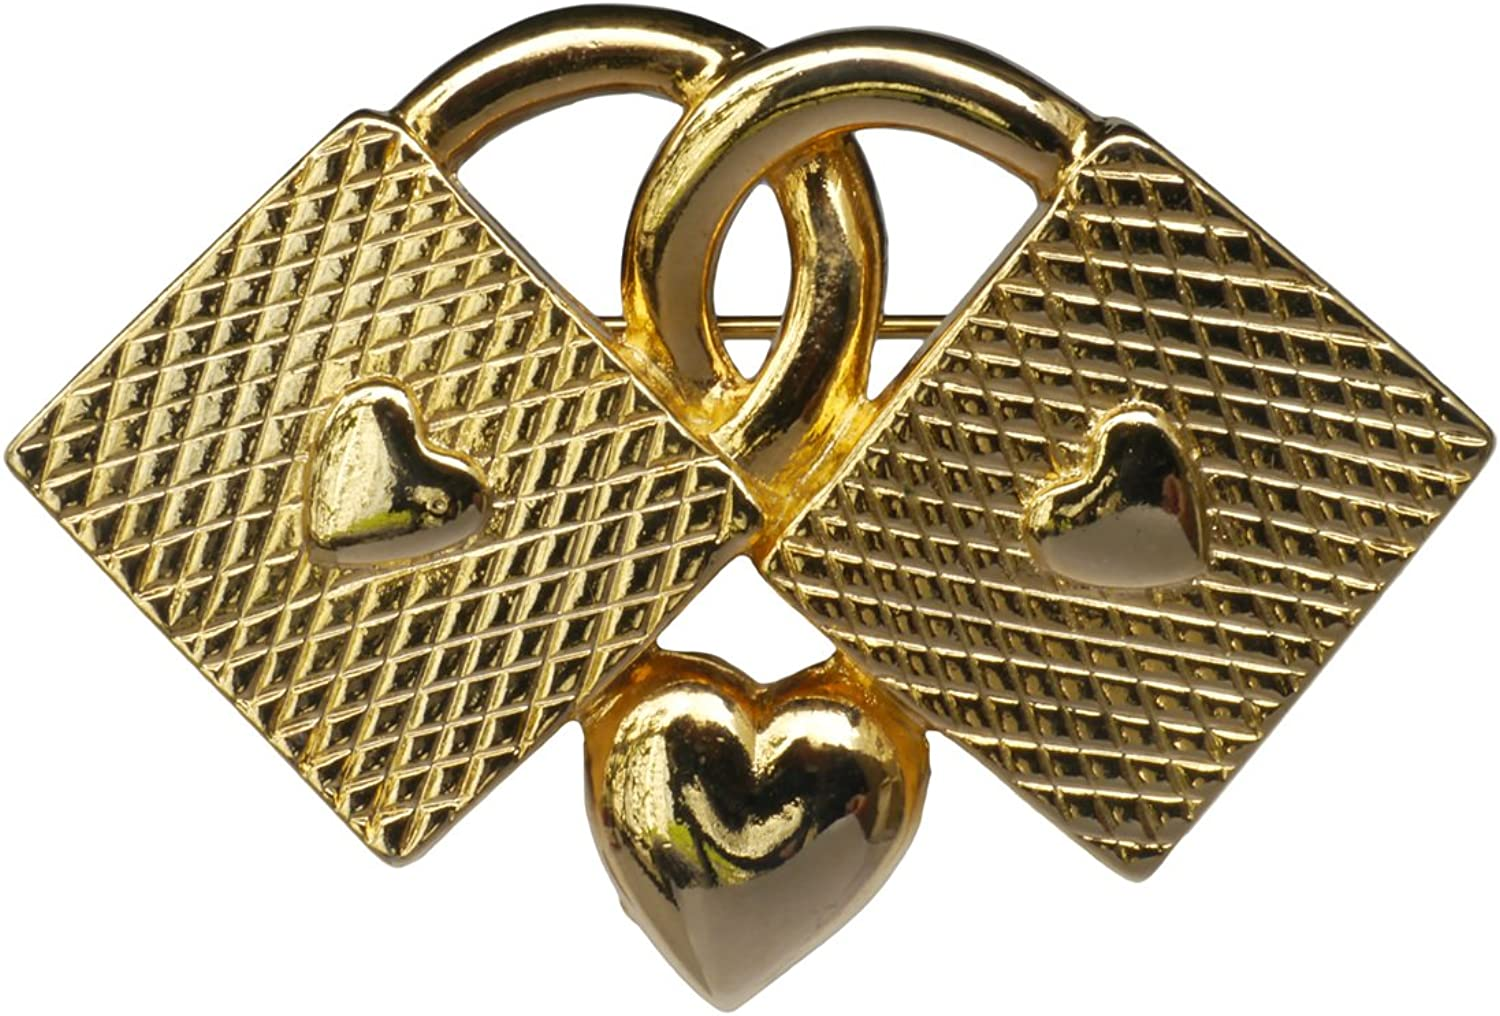 Western European Antique gold-Plated Heart-Shaped Brooch pin Badge Retro Concentric Lock